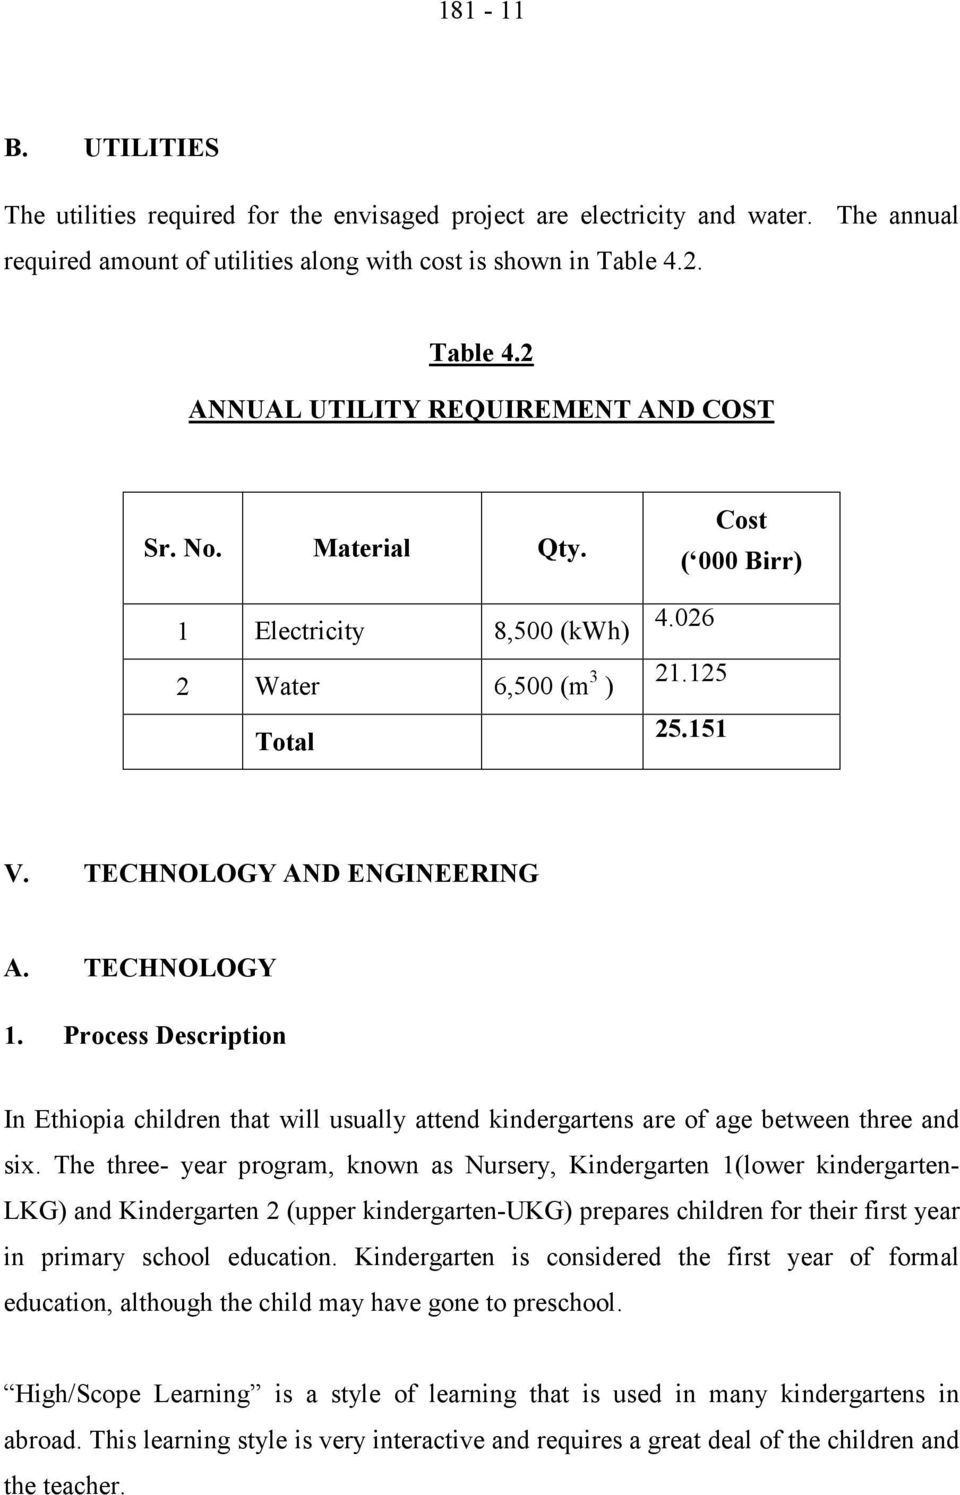 TECHNOLOGY 1. Process Description In Ethiopia children that will usually attend kindergartens are of age between three and six.